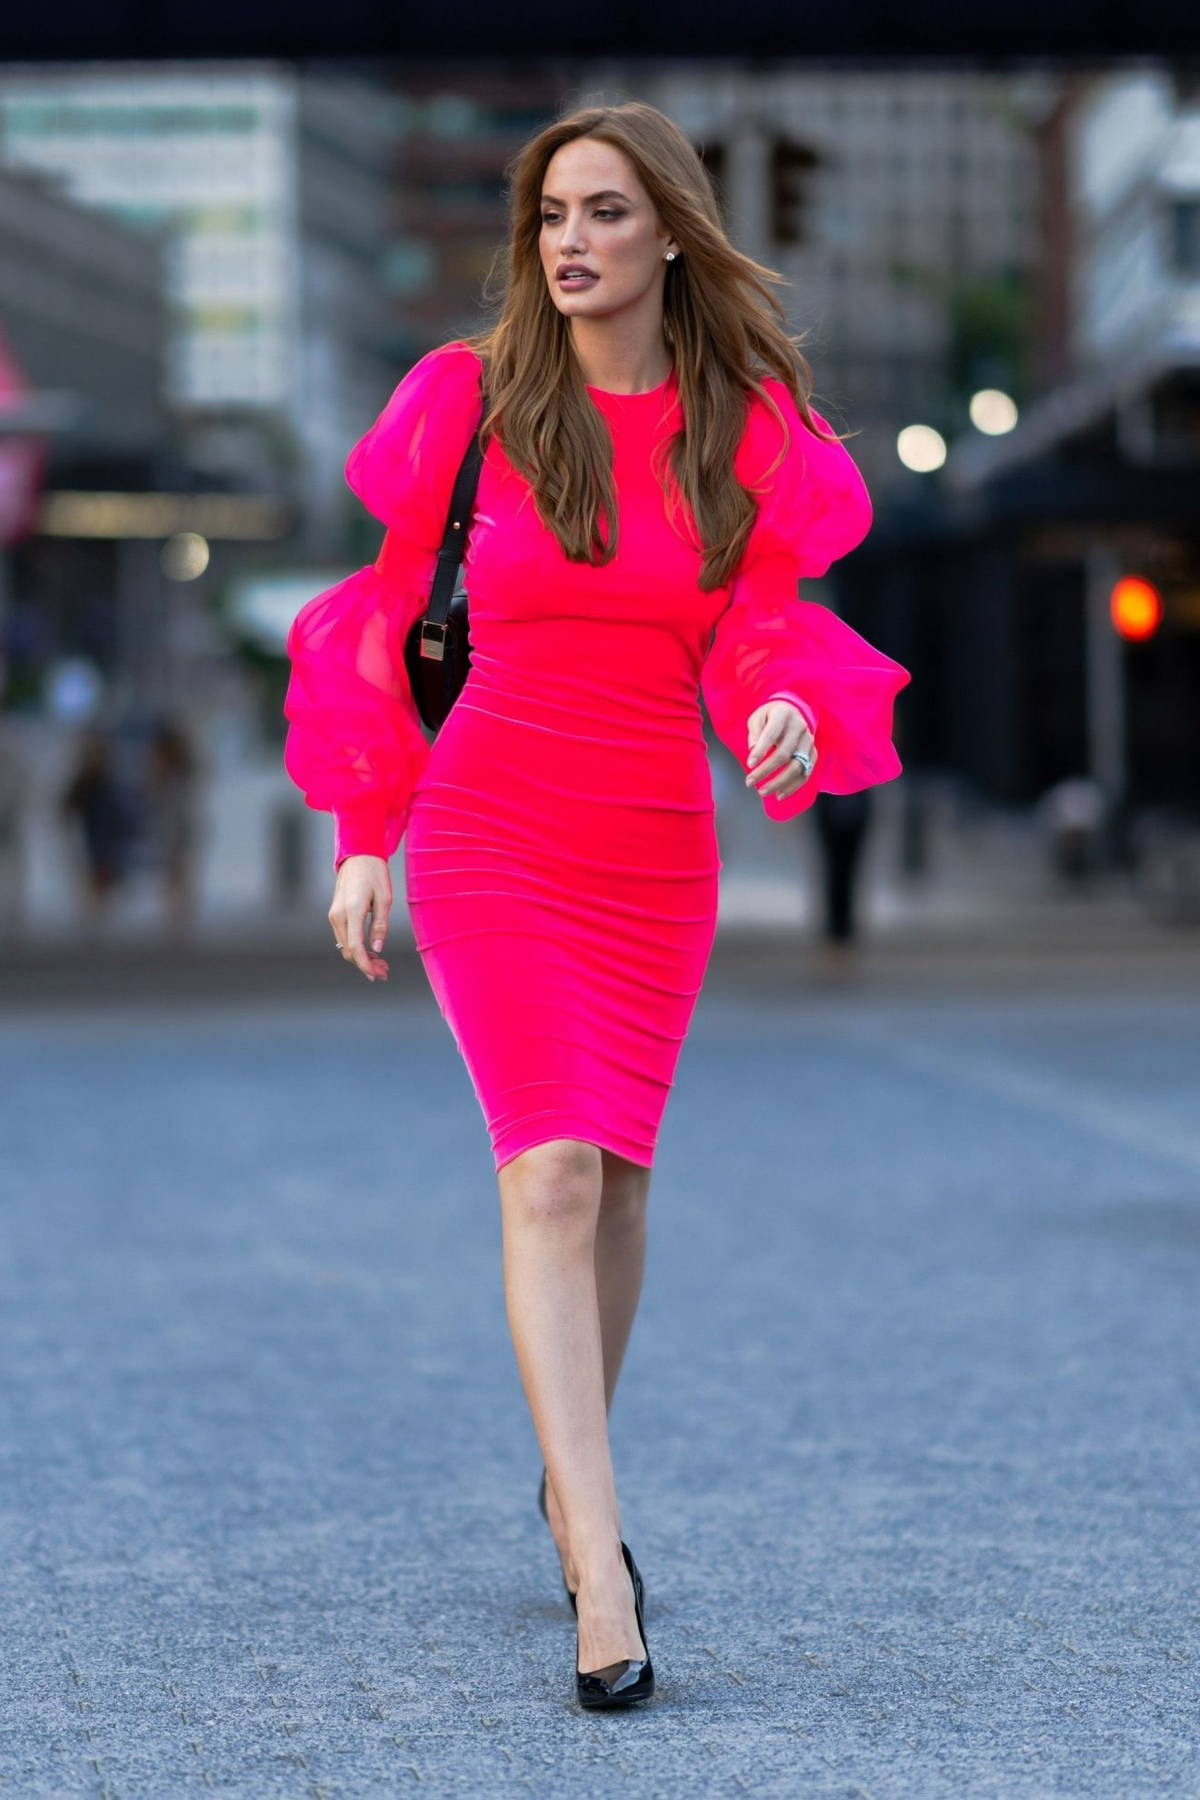 Haley Kalil dazzles in a hot pink dress while stepping out in the South Street Seaport, New York City